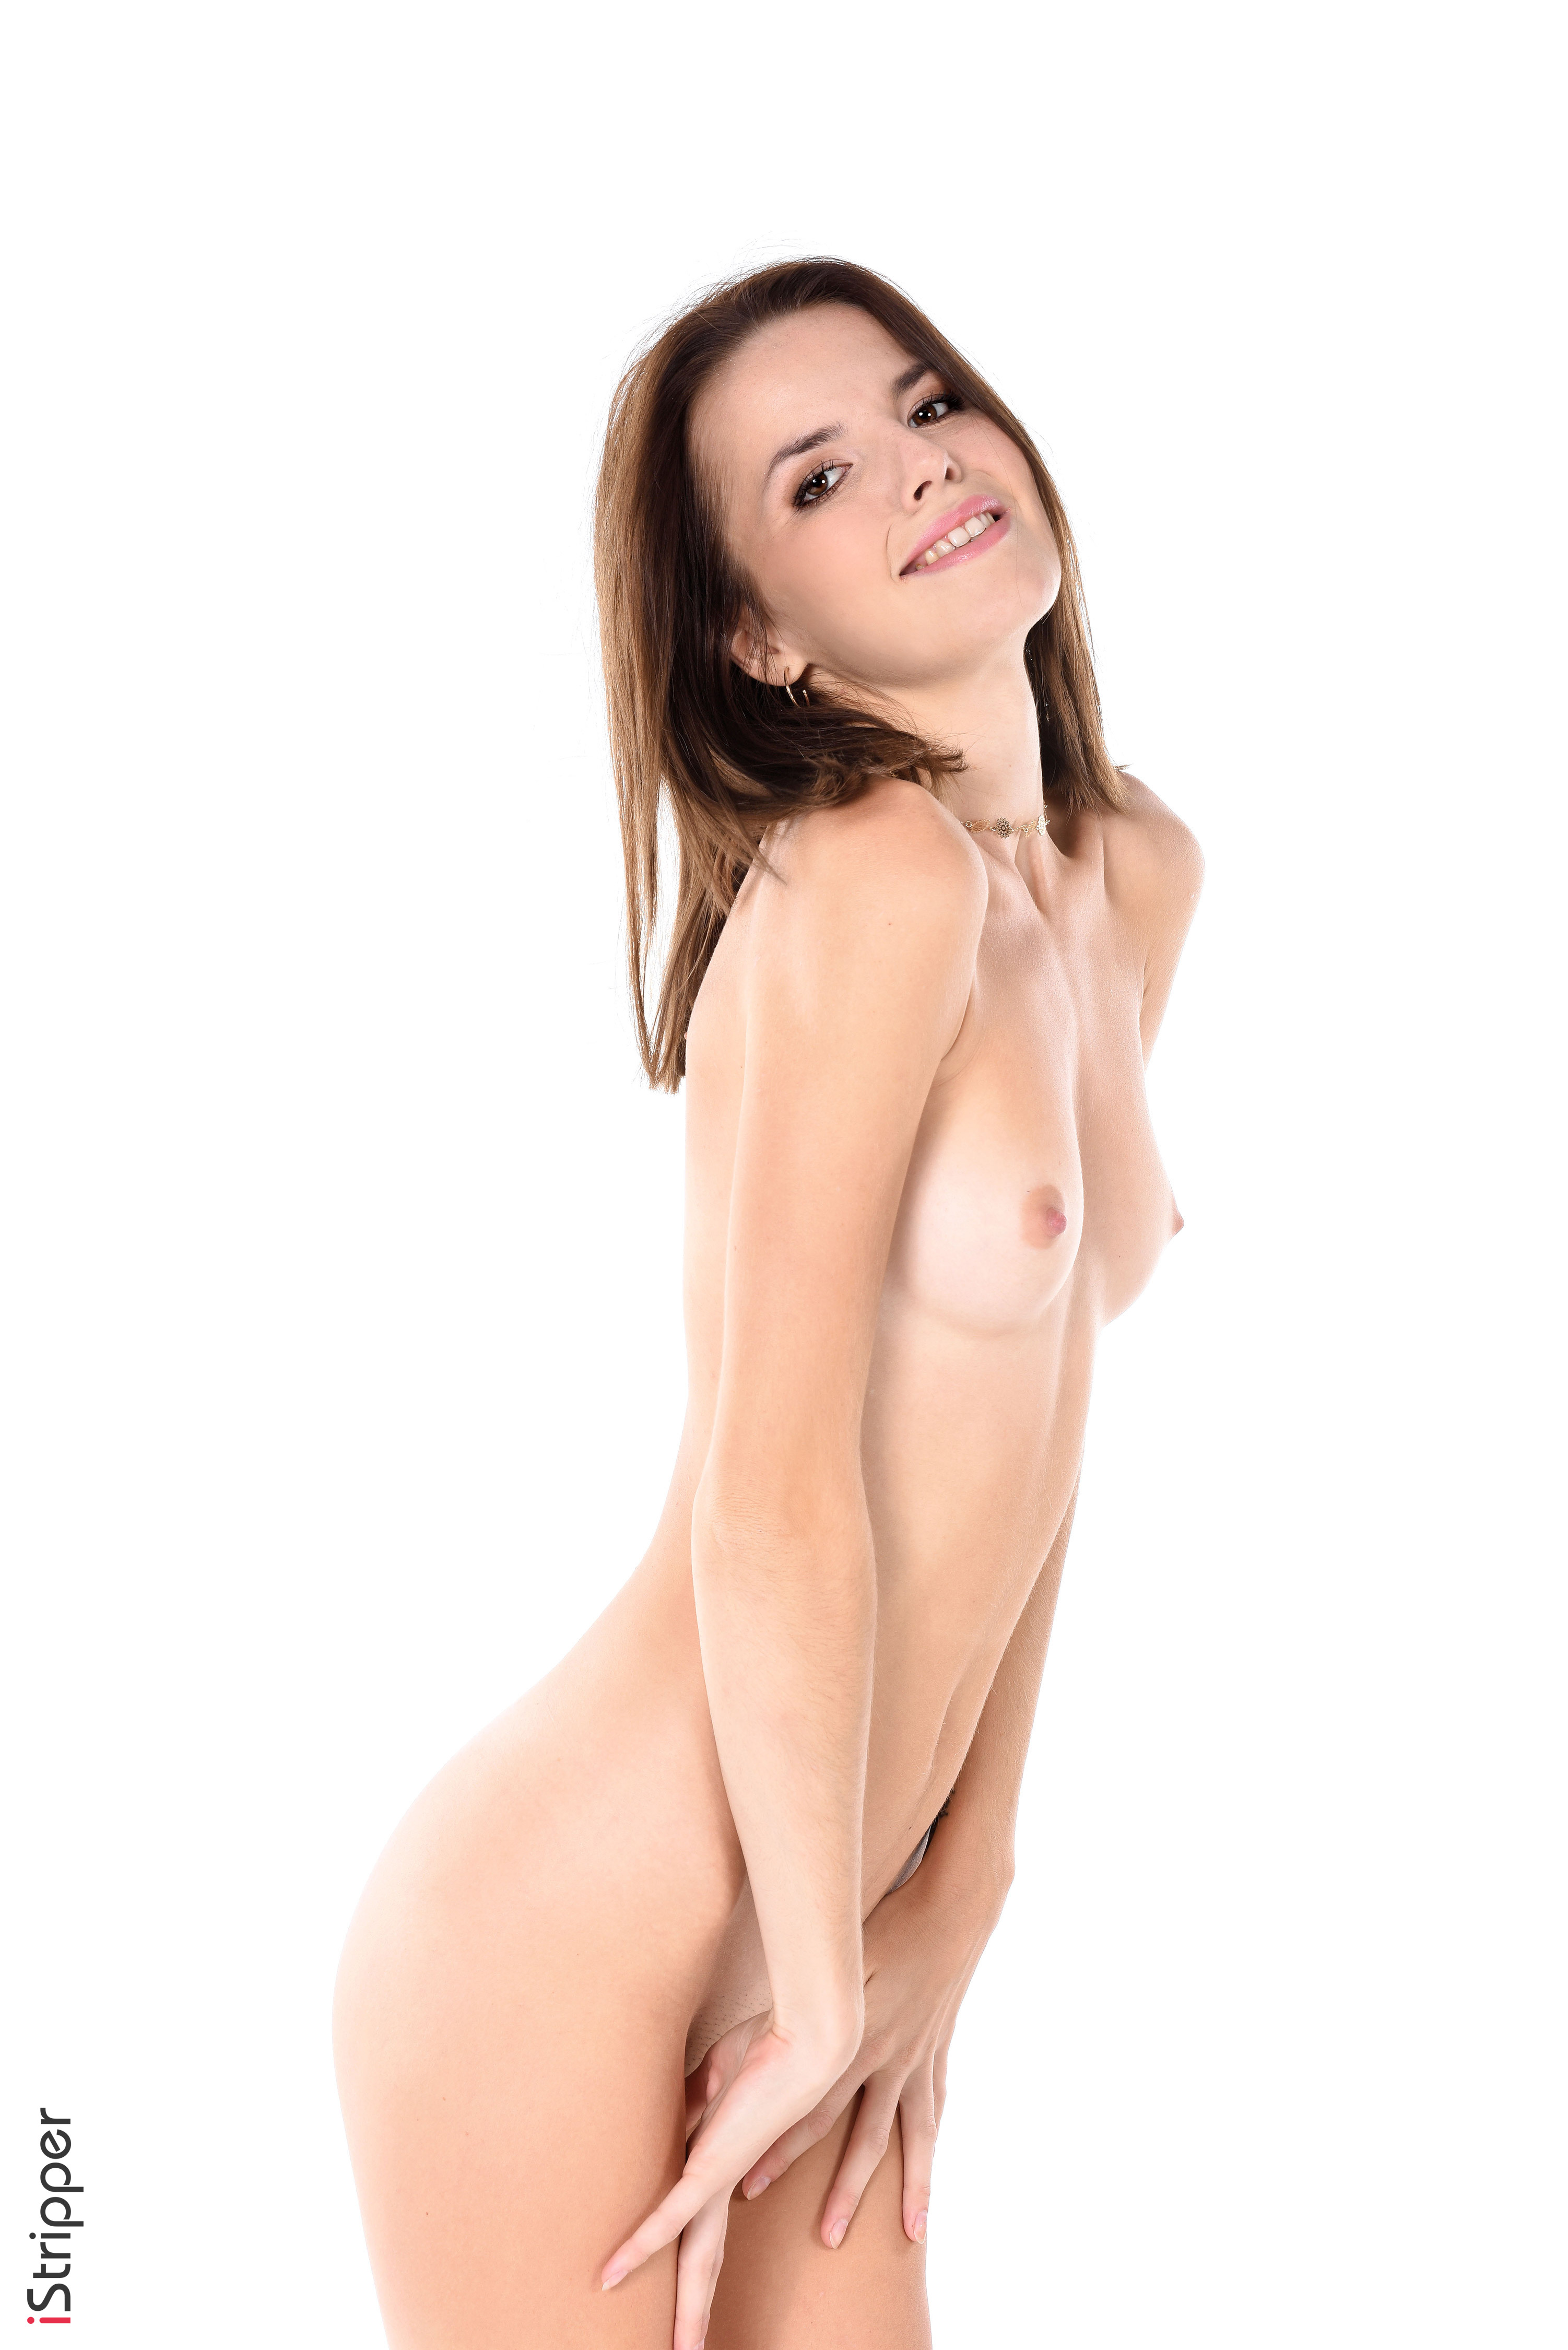 nude wallpaper babes